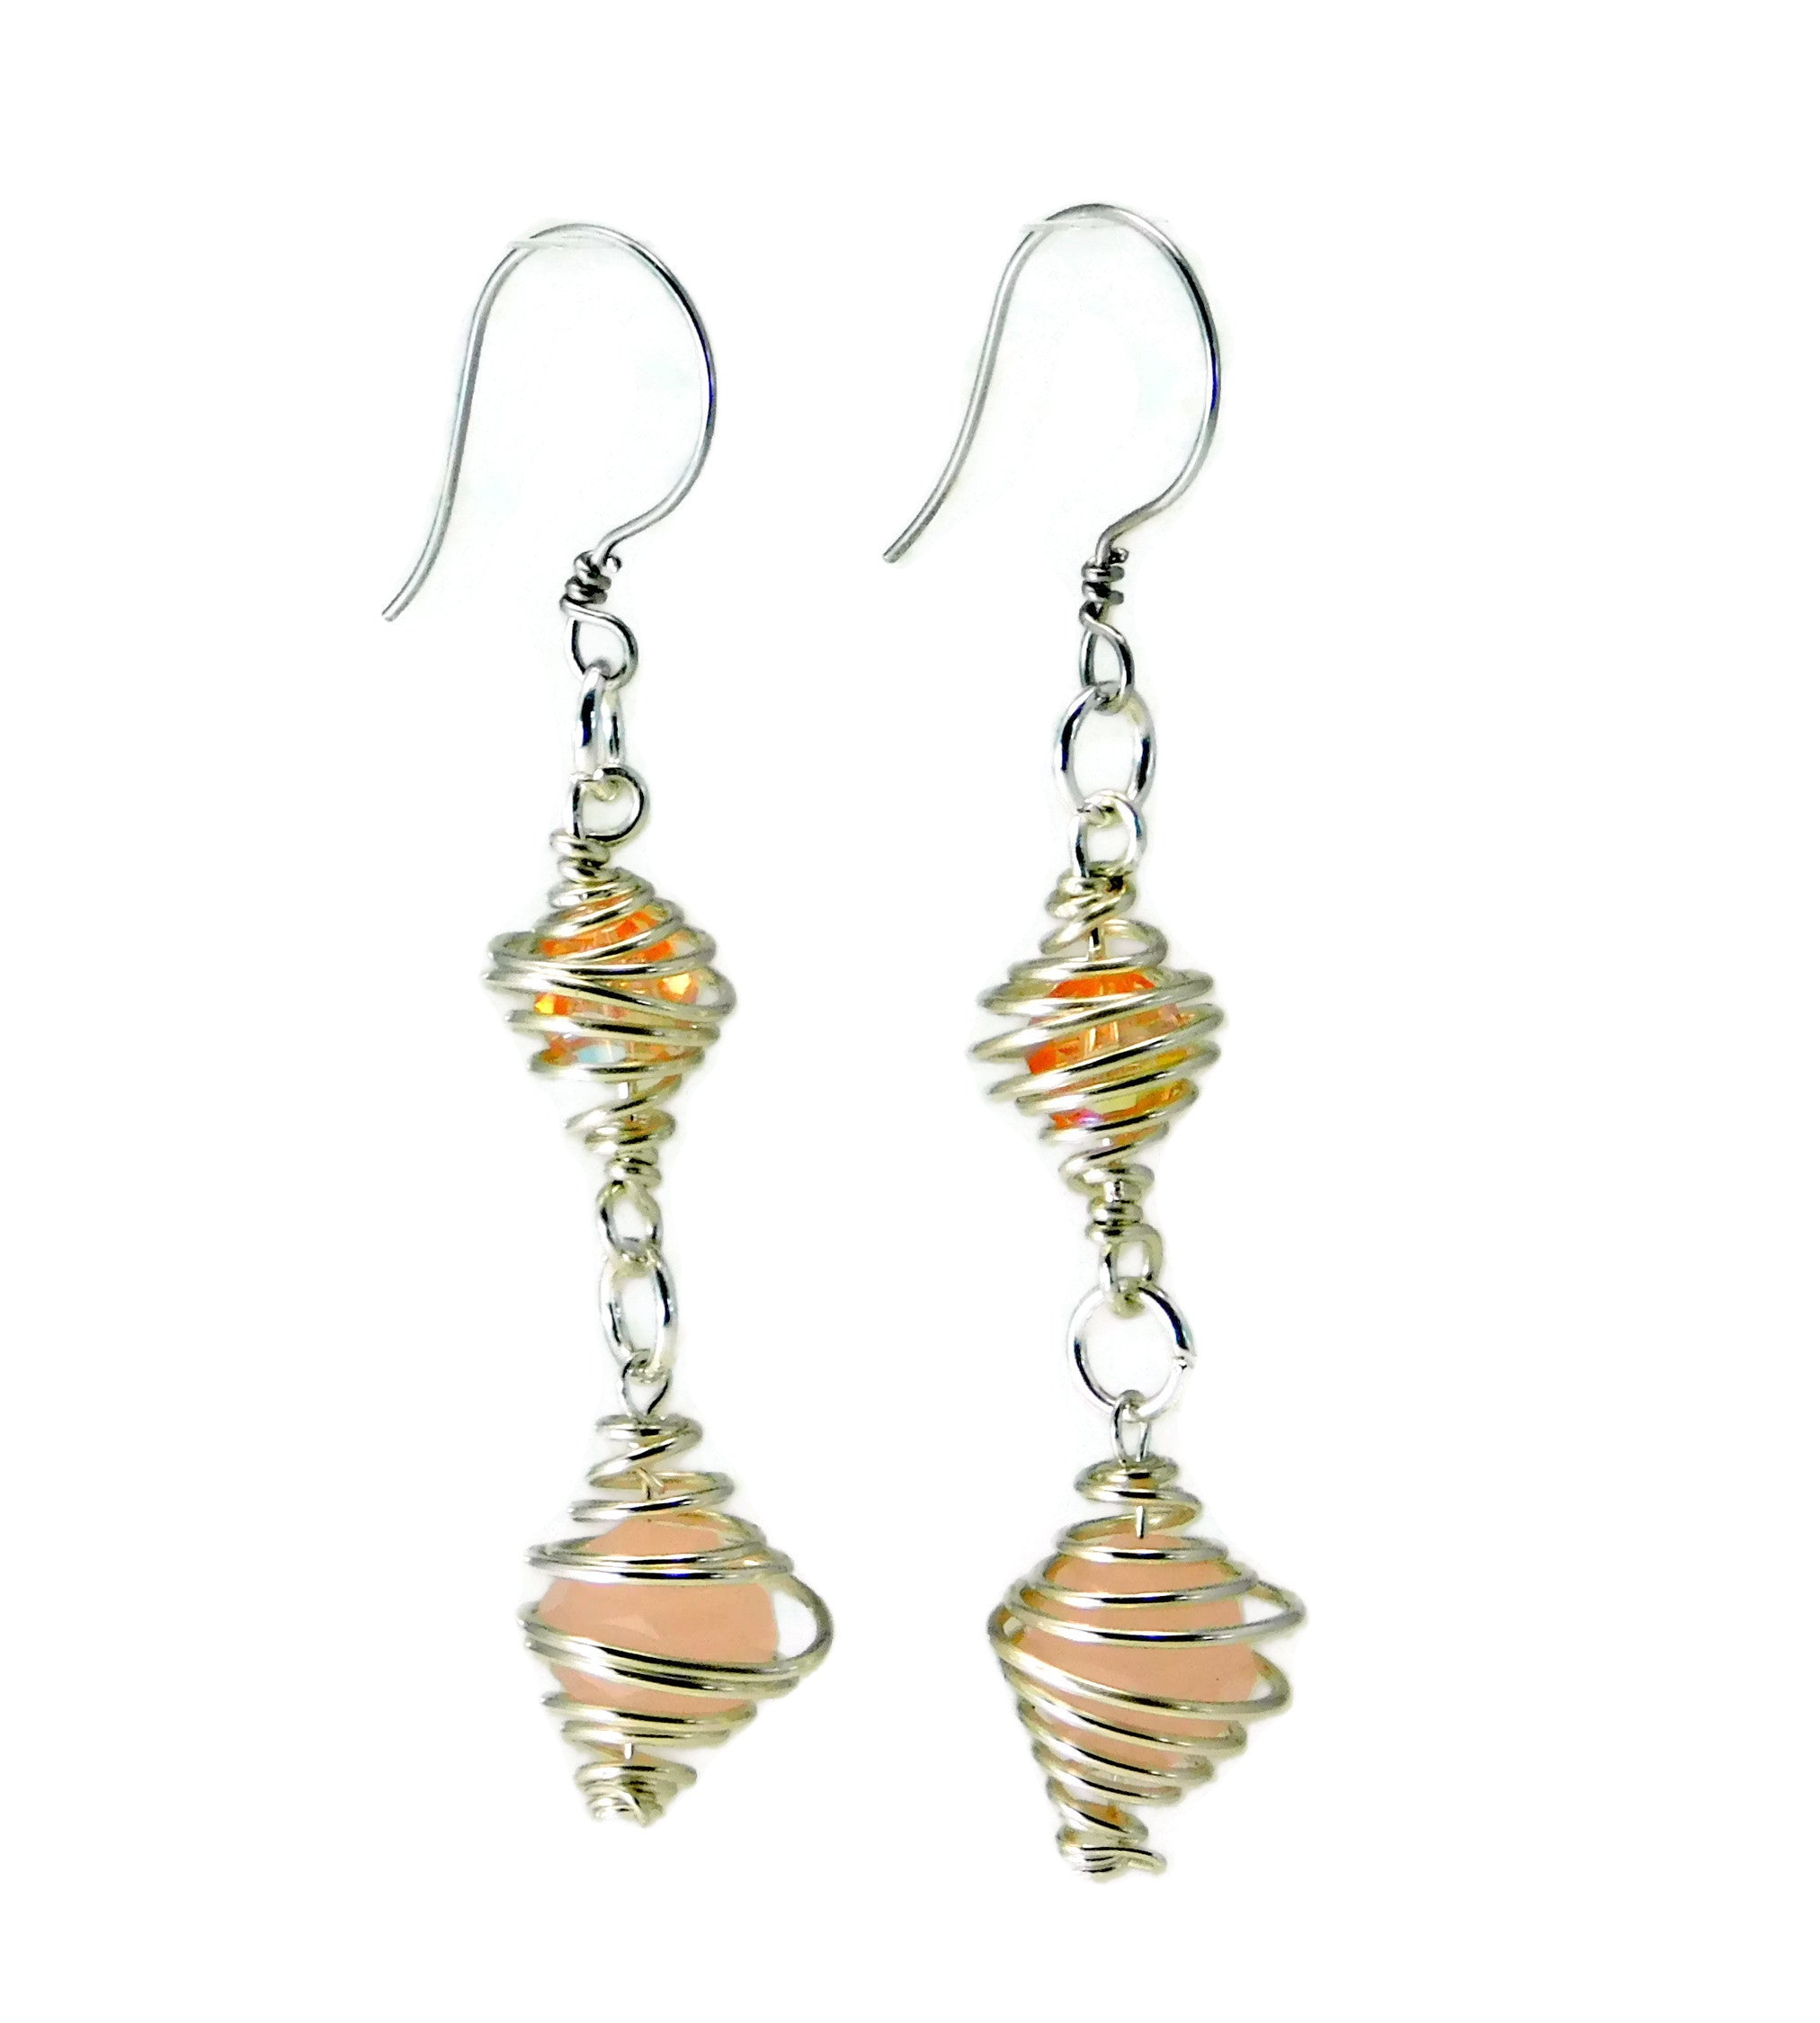 Caged Swarovski Crystal Earrings DIY Wire Wrapping Kit